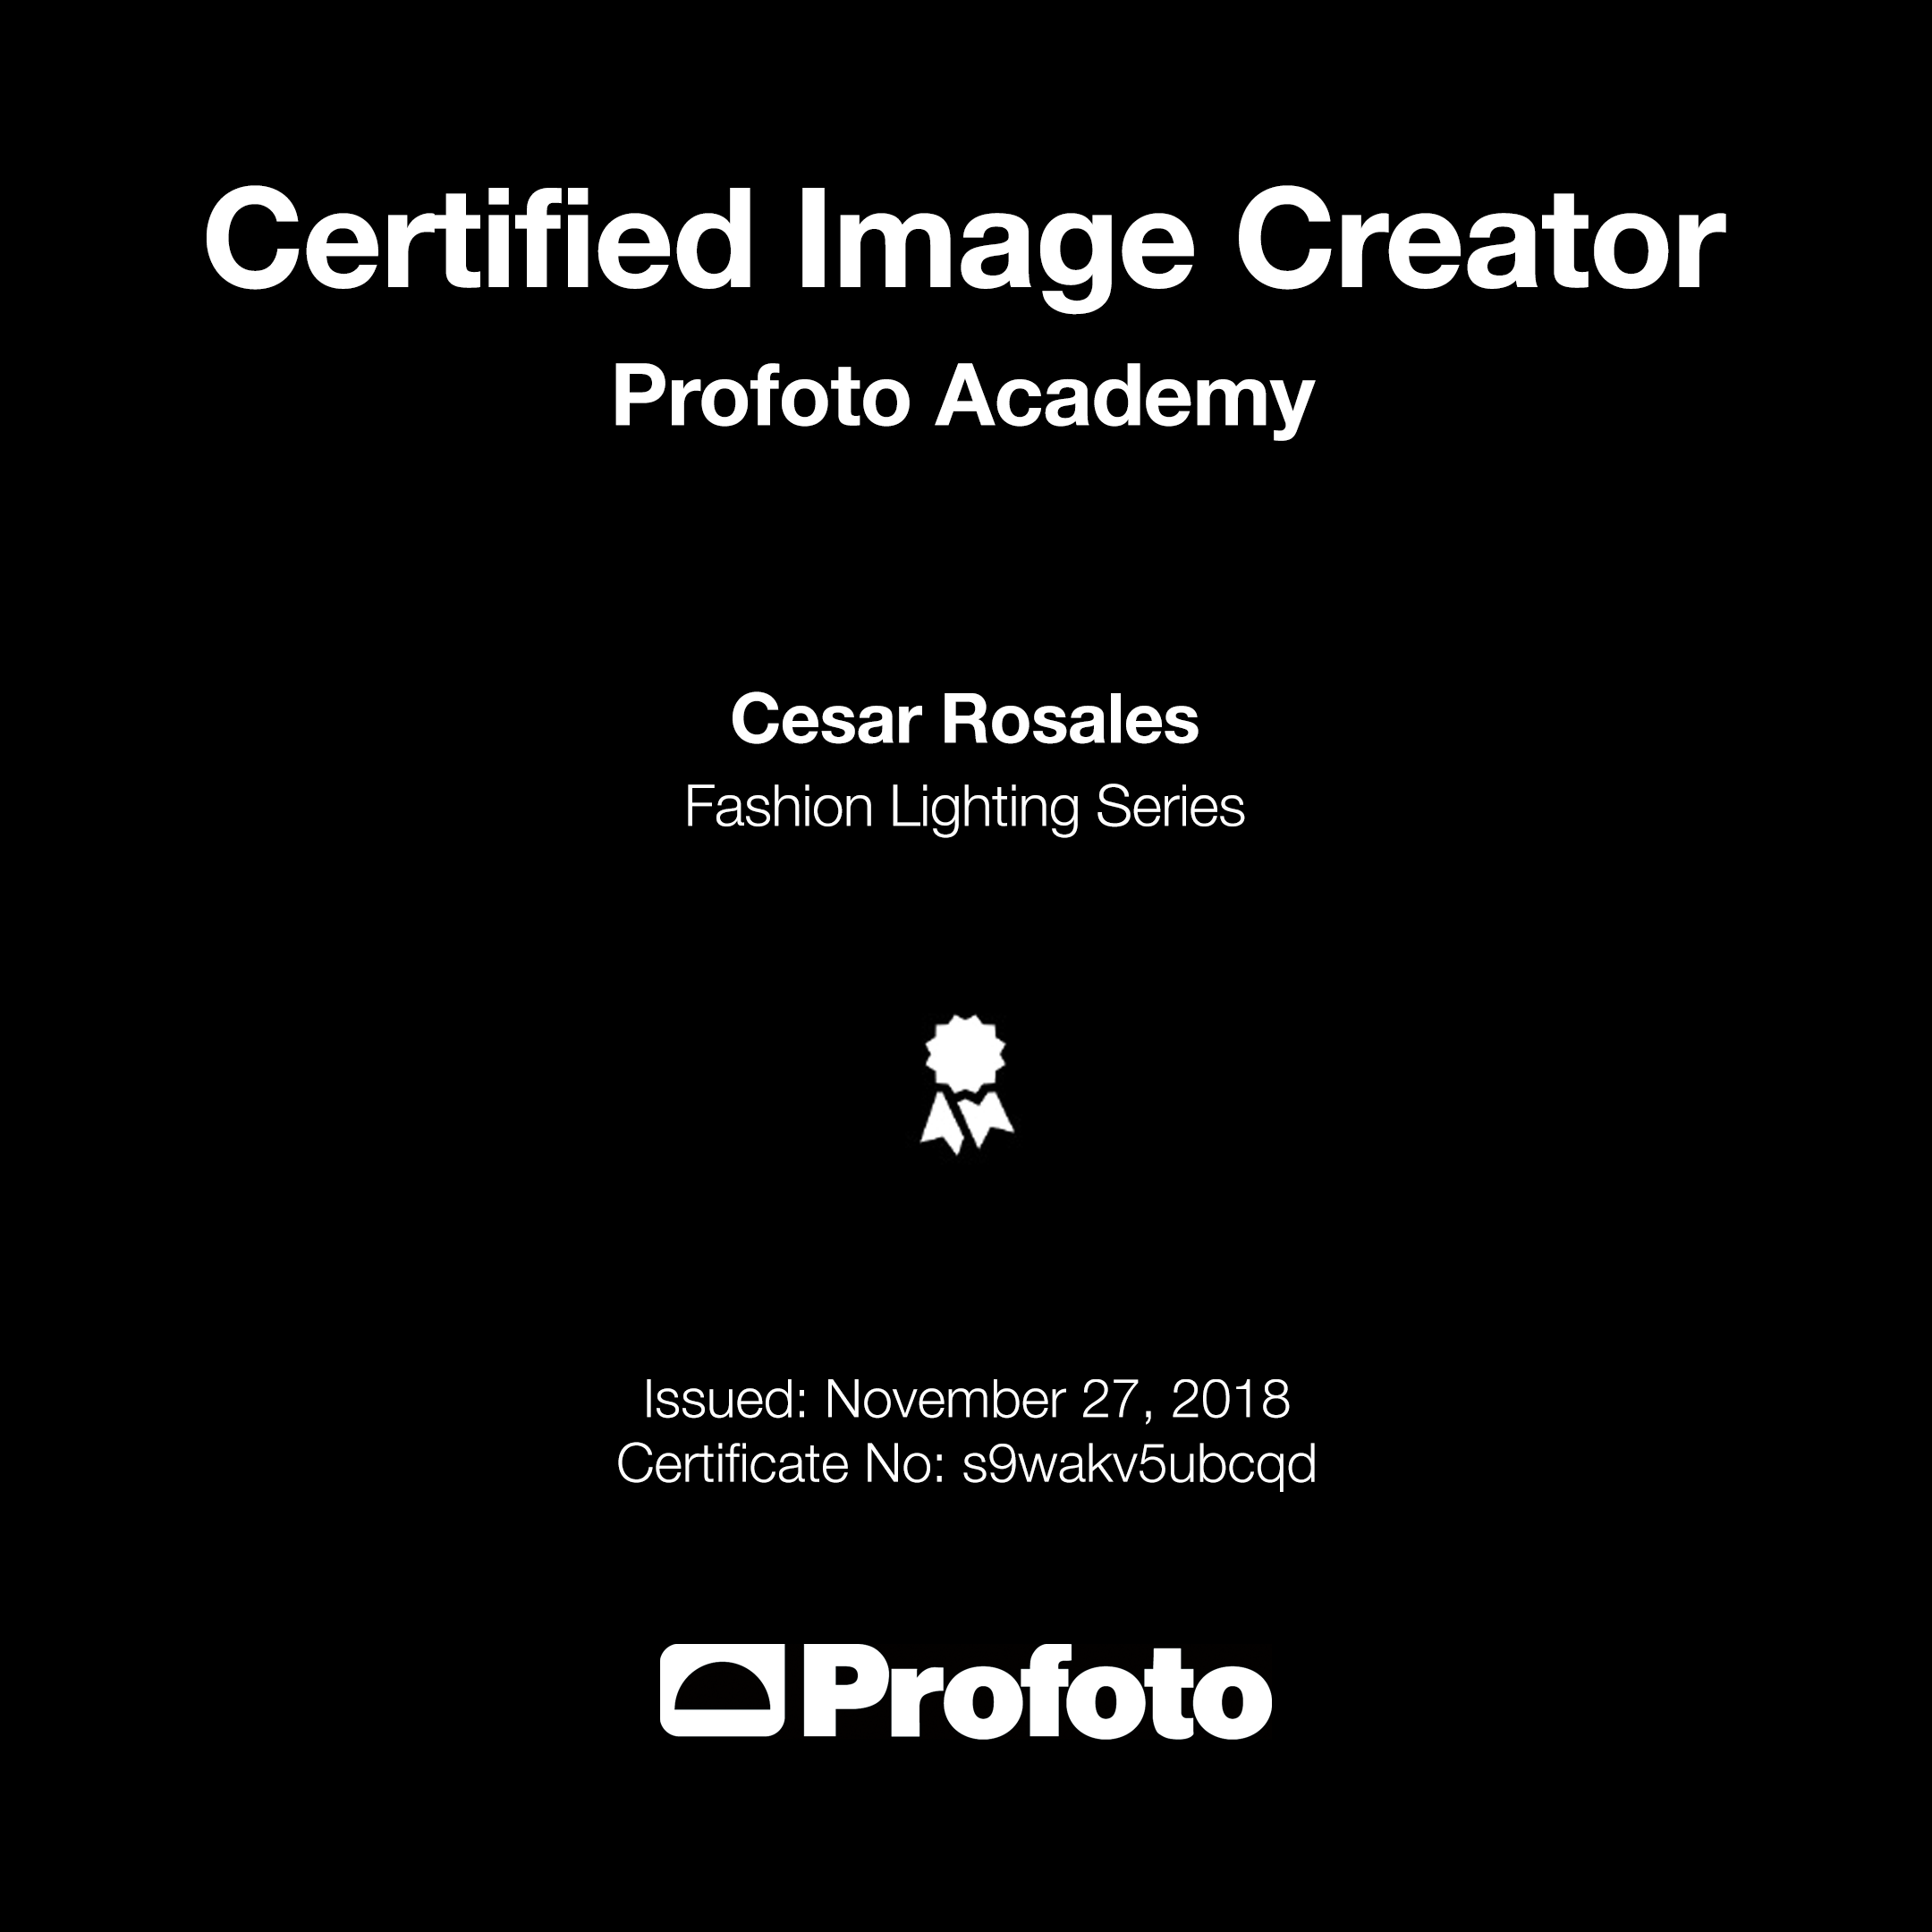 profotoCertified.png